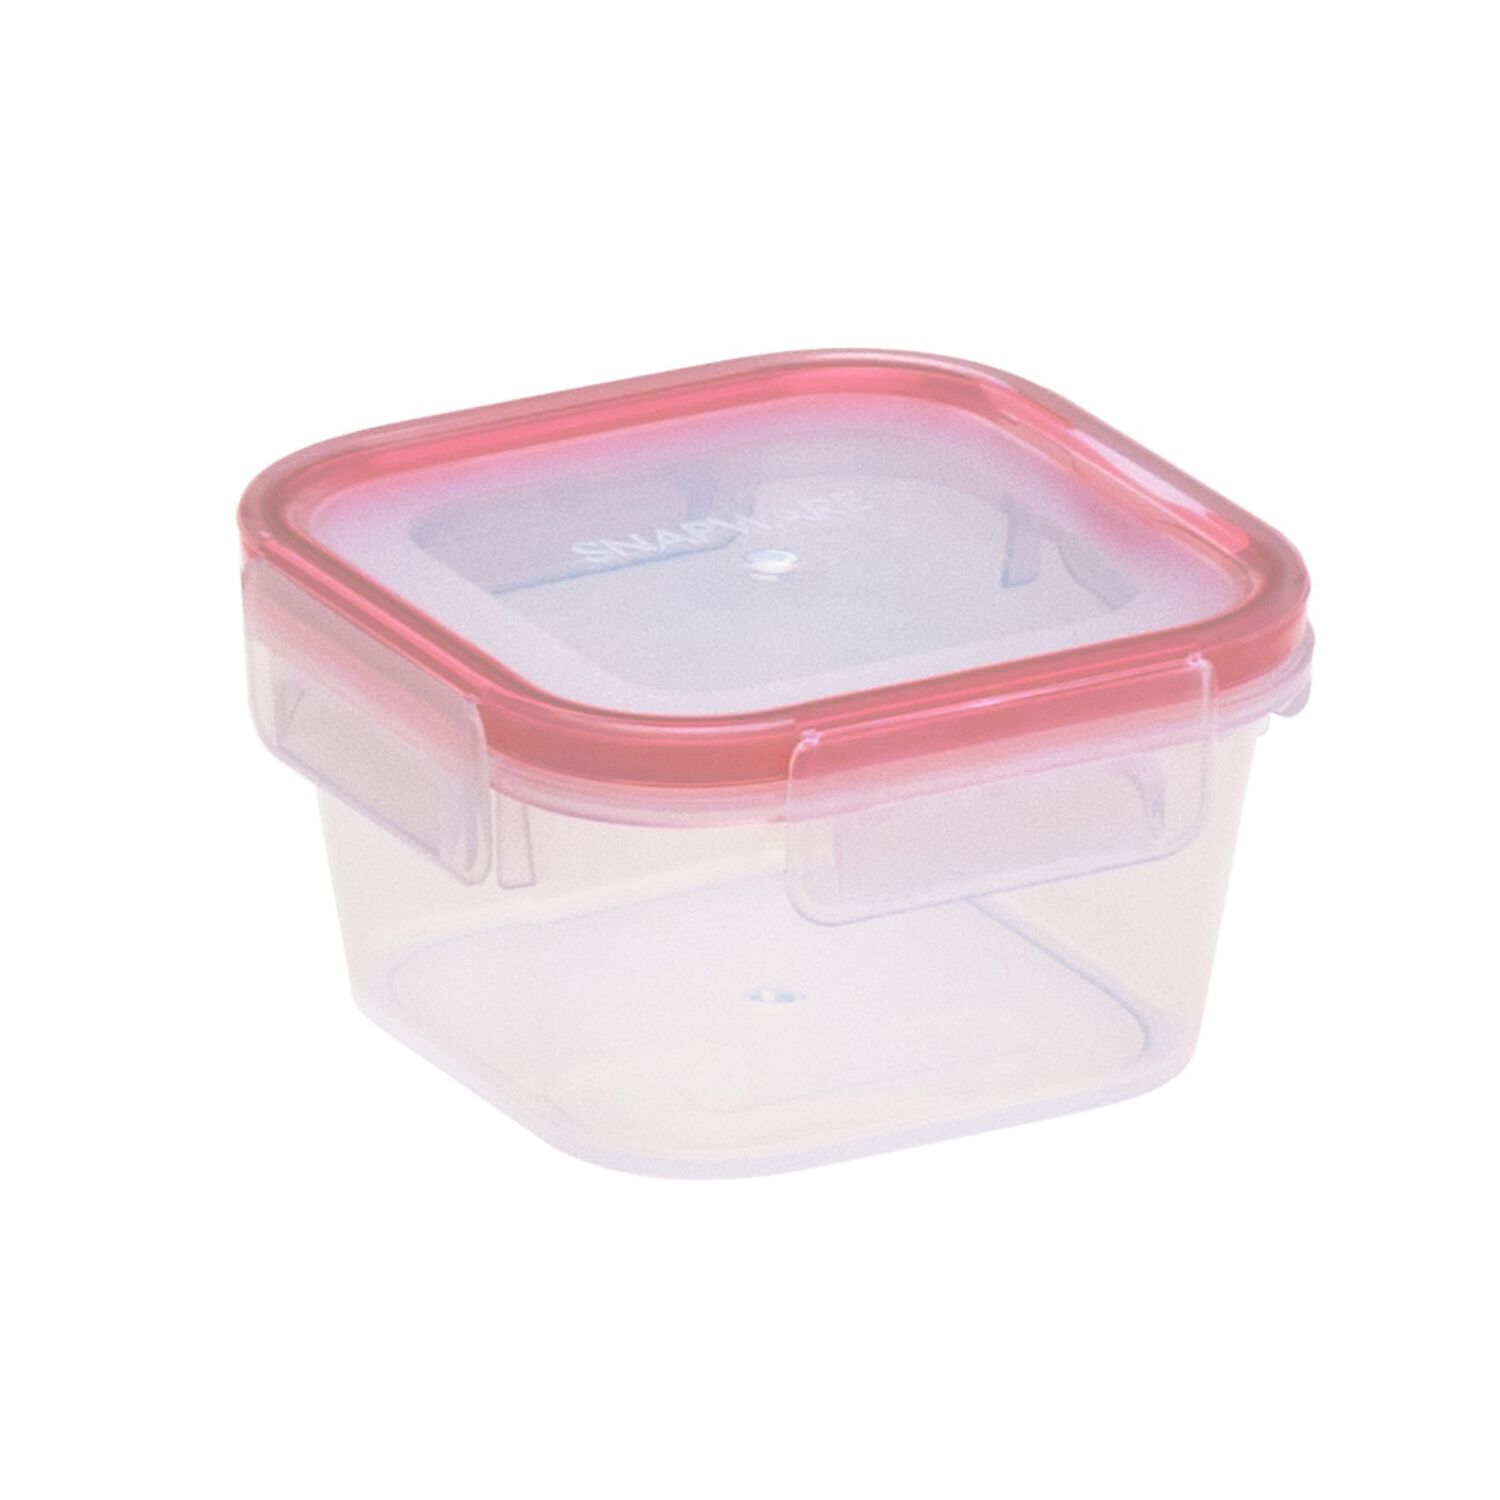 Snapware airtight food storage 1 3 cup container world for Container en francais